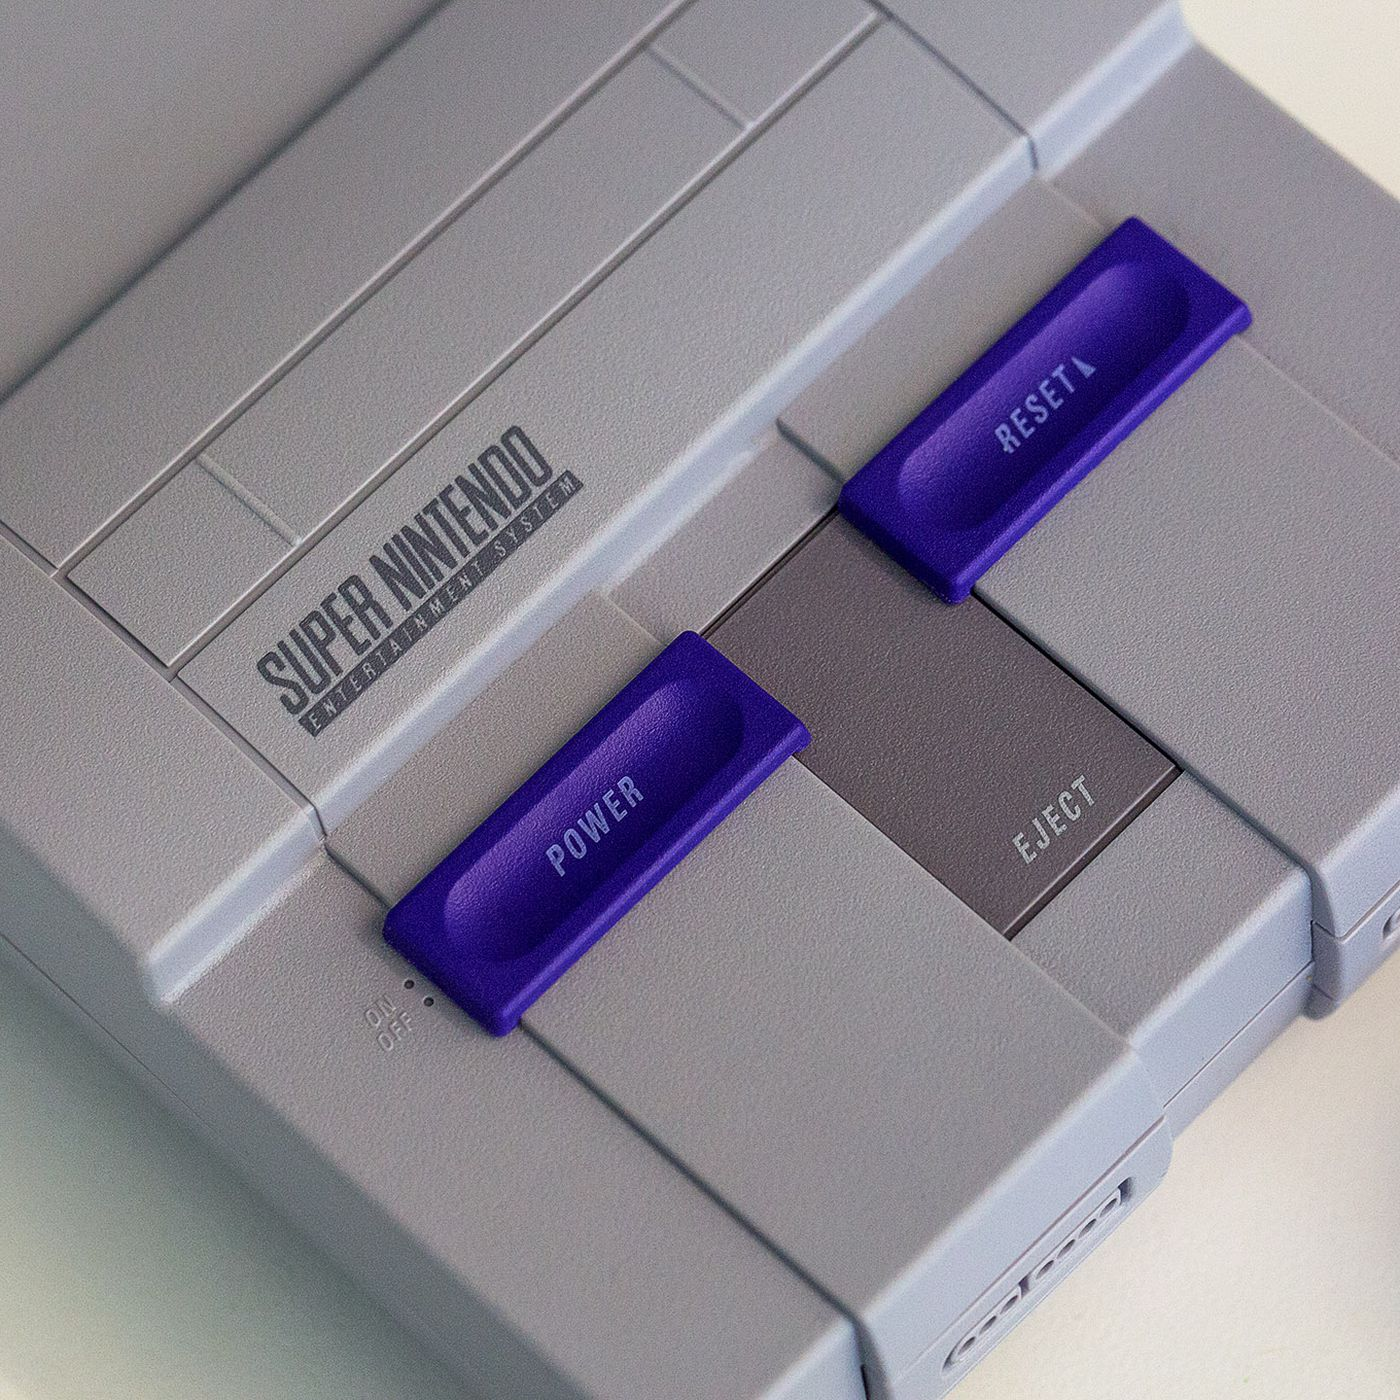 Nintendo's SNES Classic can run sideloaded games with this